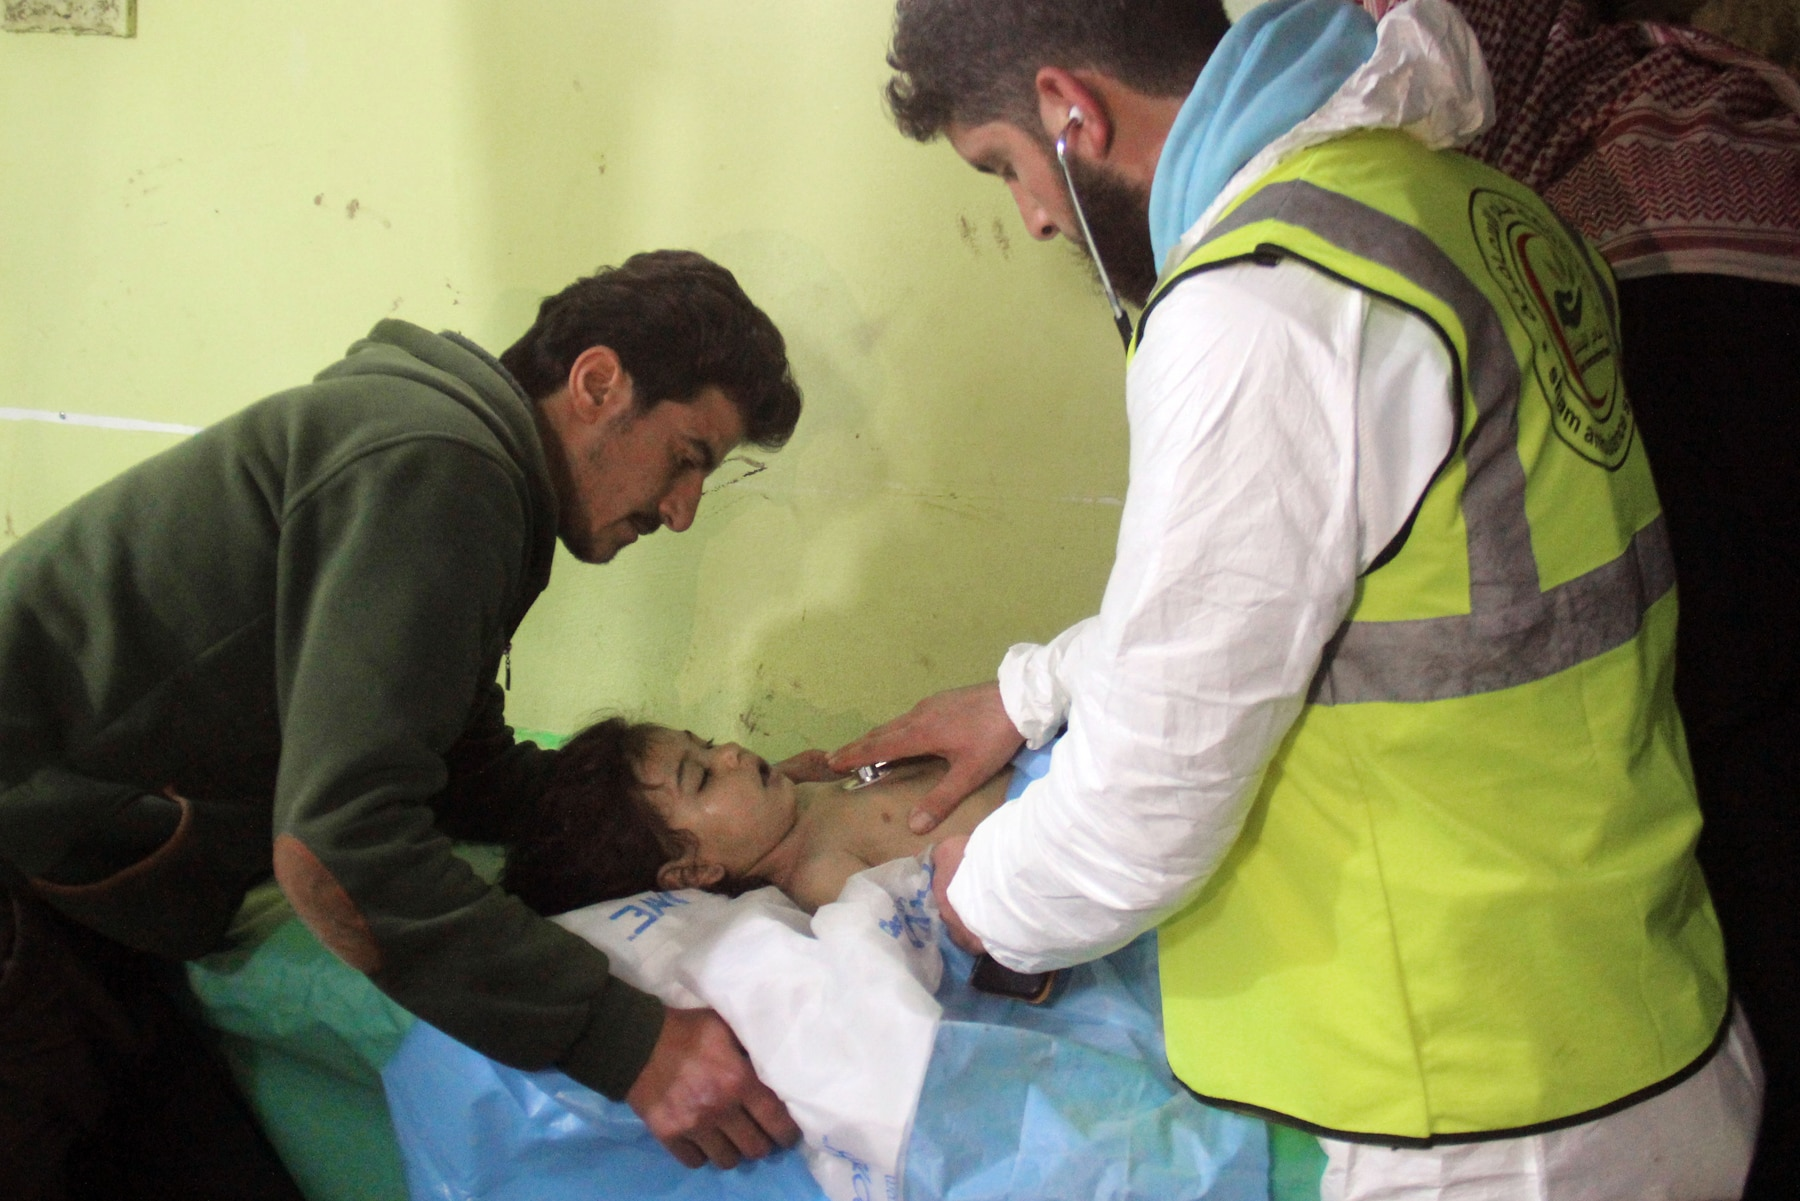 Syrian child receiving treatment at a hospital (© AFP via Getty Images)